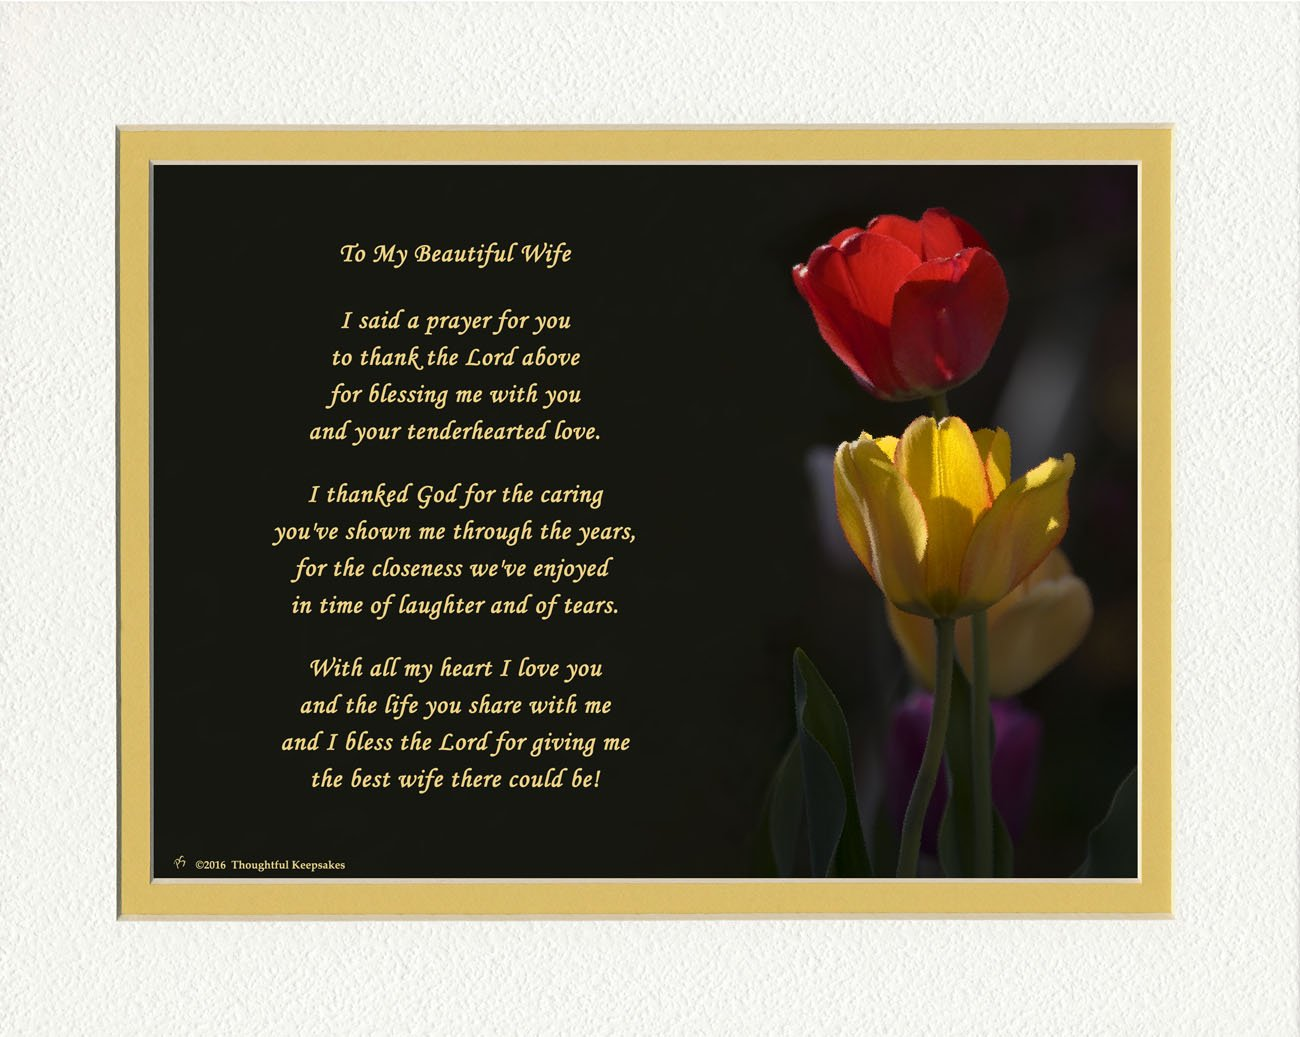 Wife Gift with ''Thank You Prayer for Best Wife'' Poem. Tulips Photo, 8x10 Double Matted. Special Wife Gift for Anniversary, Birthday, Christmas. Valentine's Day Gifts.